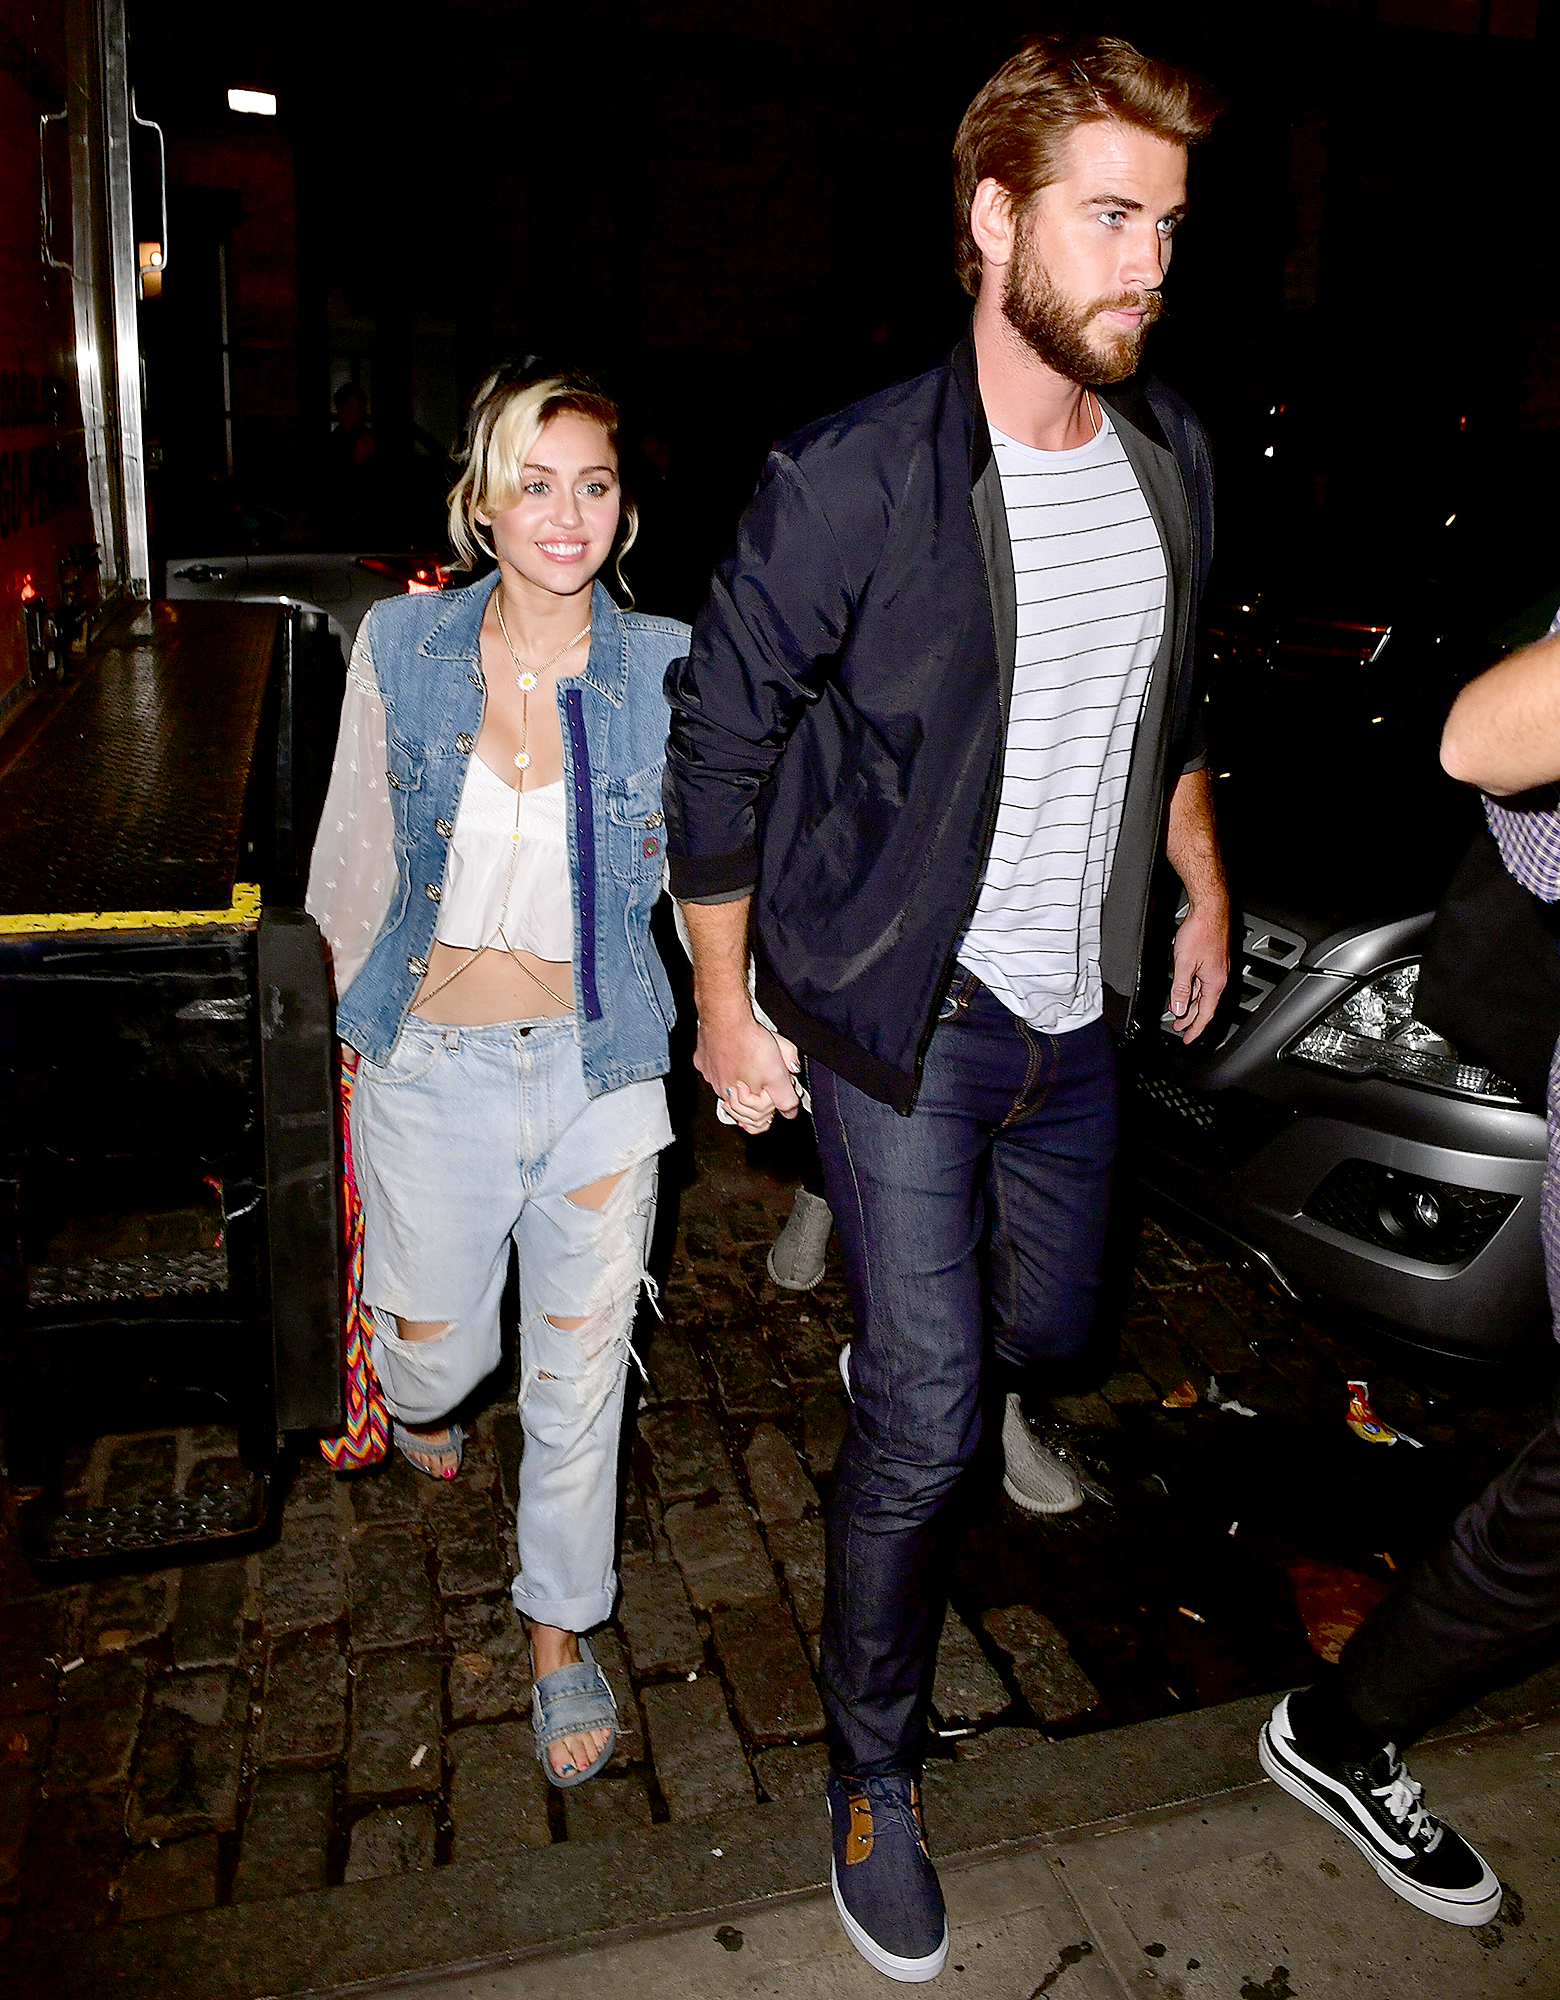 miley-cyrus-liam-hemsworth-2016-back-together - Cyrus rekindled her romance with Hemsworth in October 2016 and confirmed that the pair were reengaged.